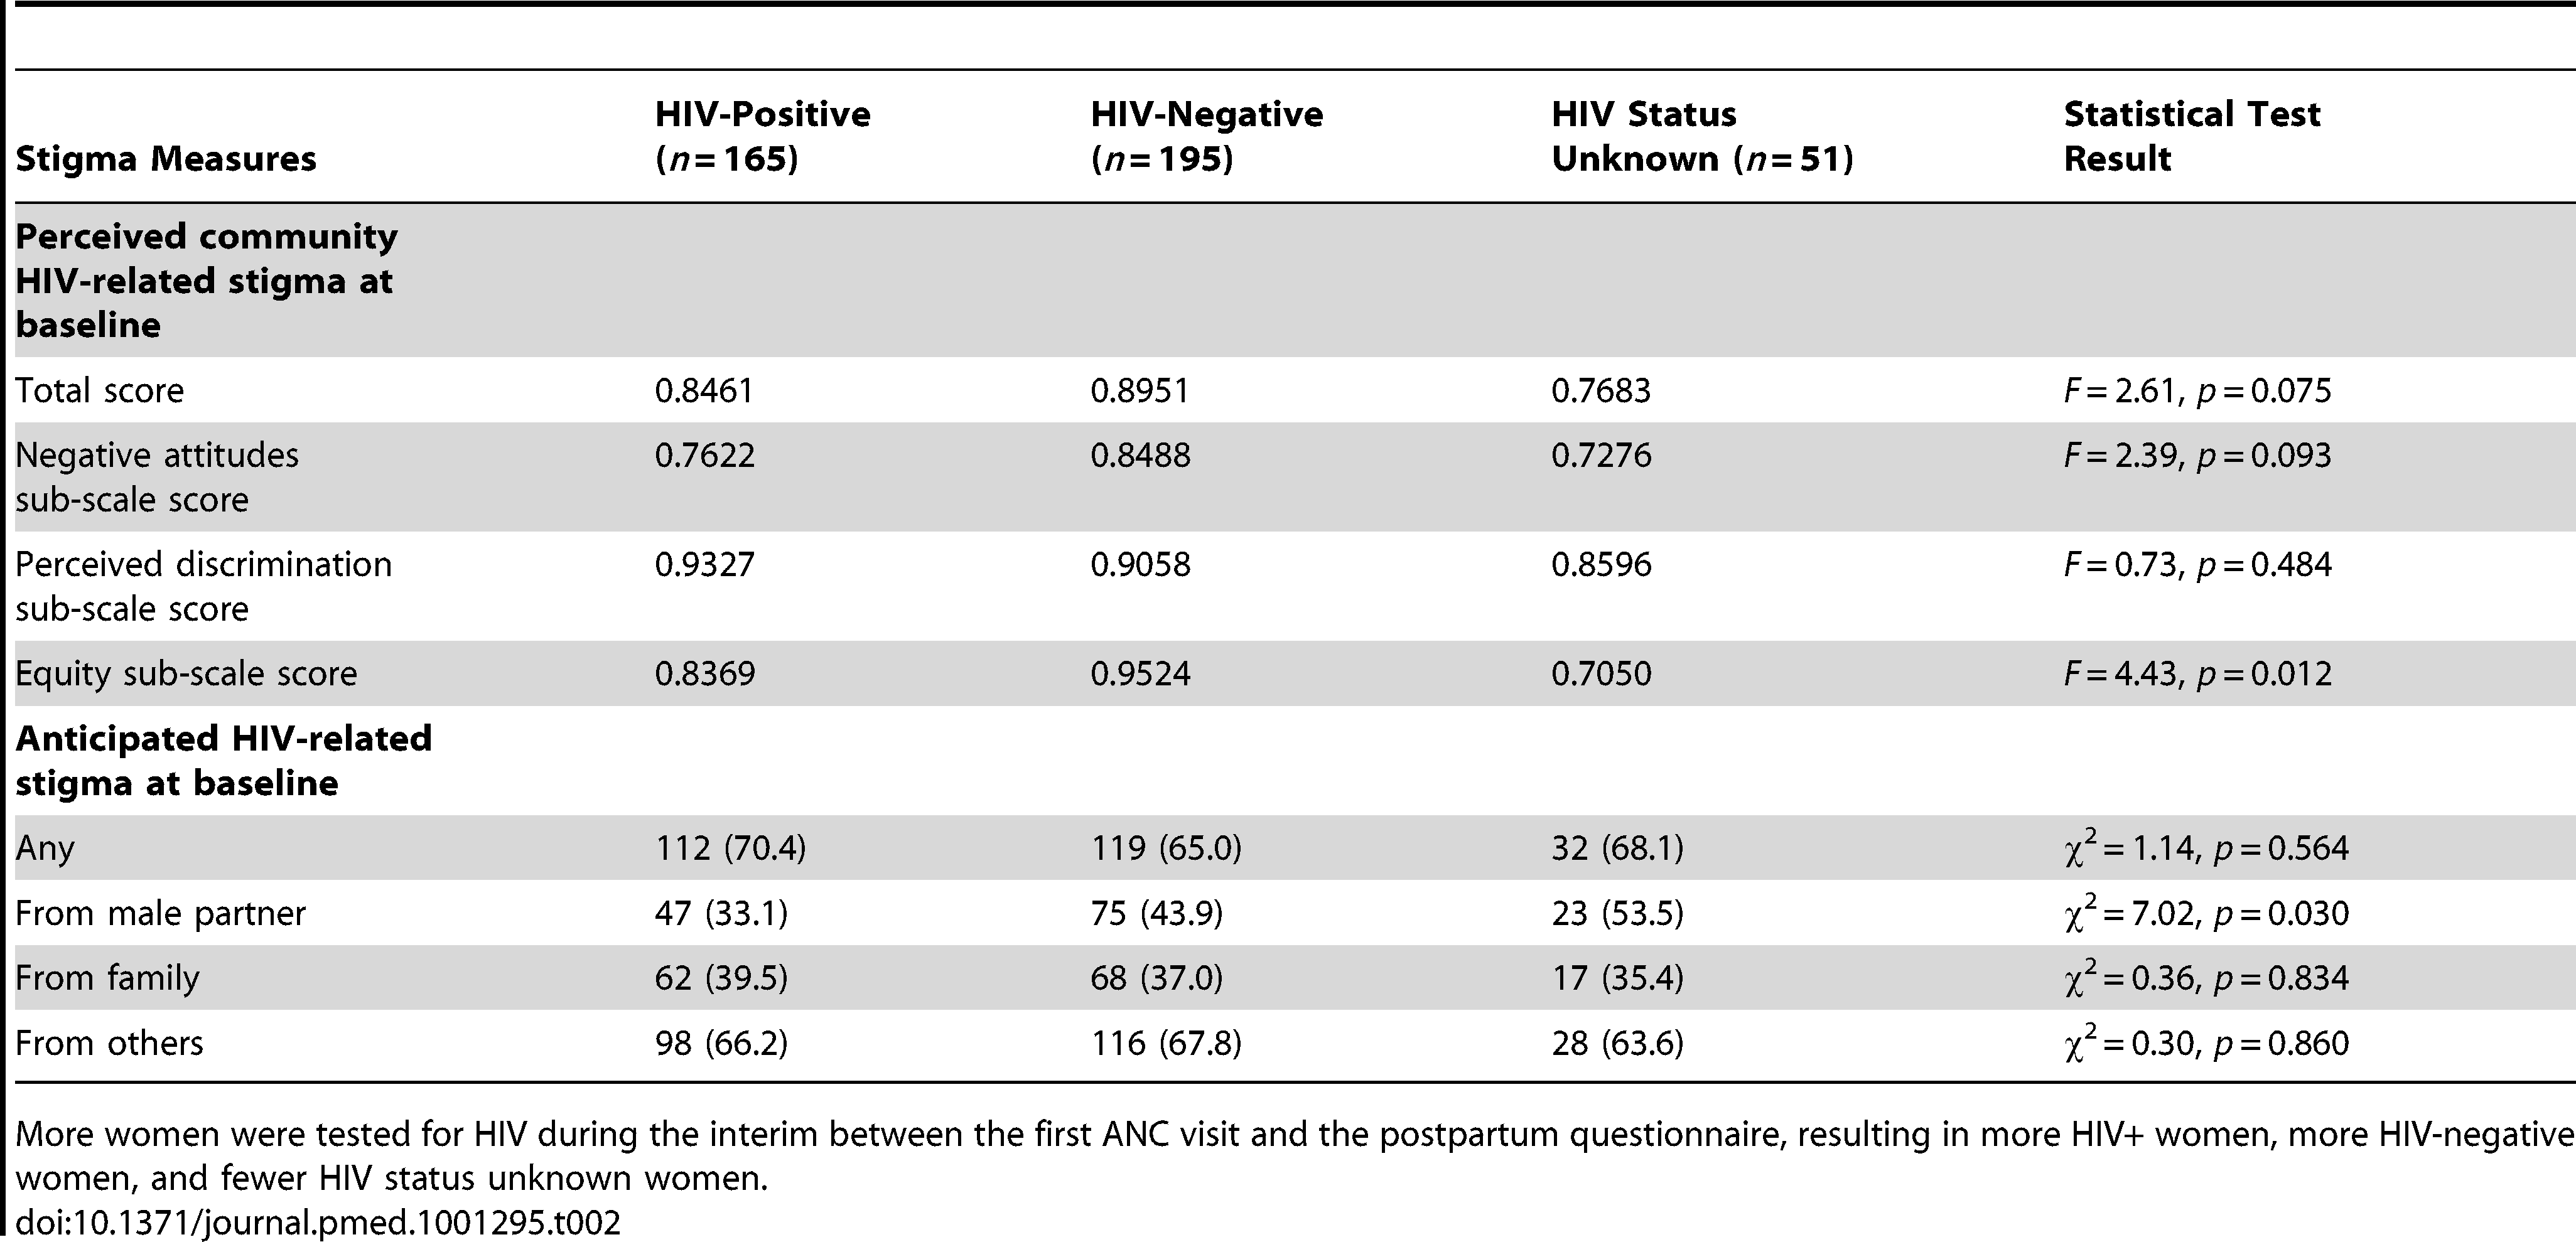 Baseline perceptions of HIV-related stigma by HIV status at the time of the postpartum questionnnaire (<i>n</i>=411).